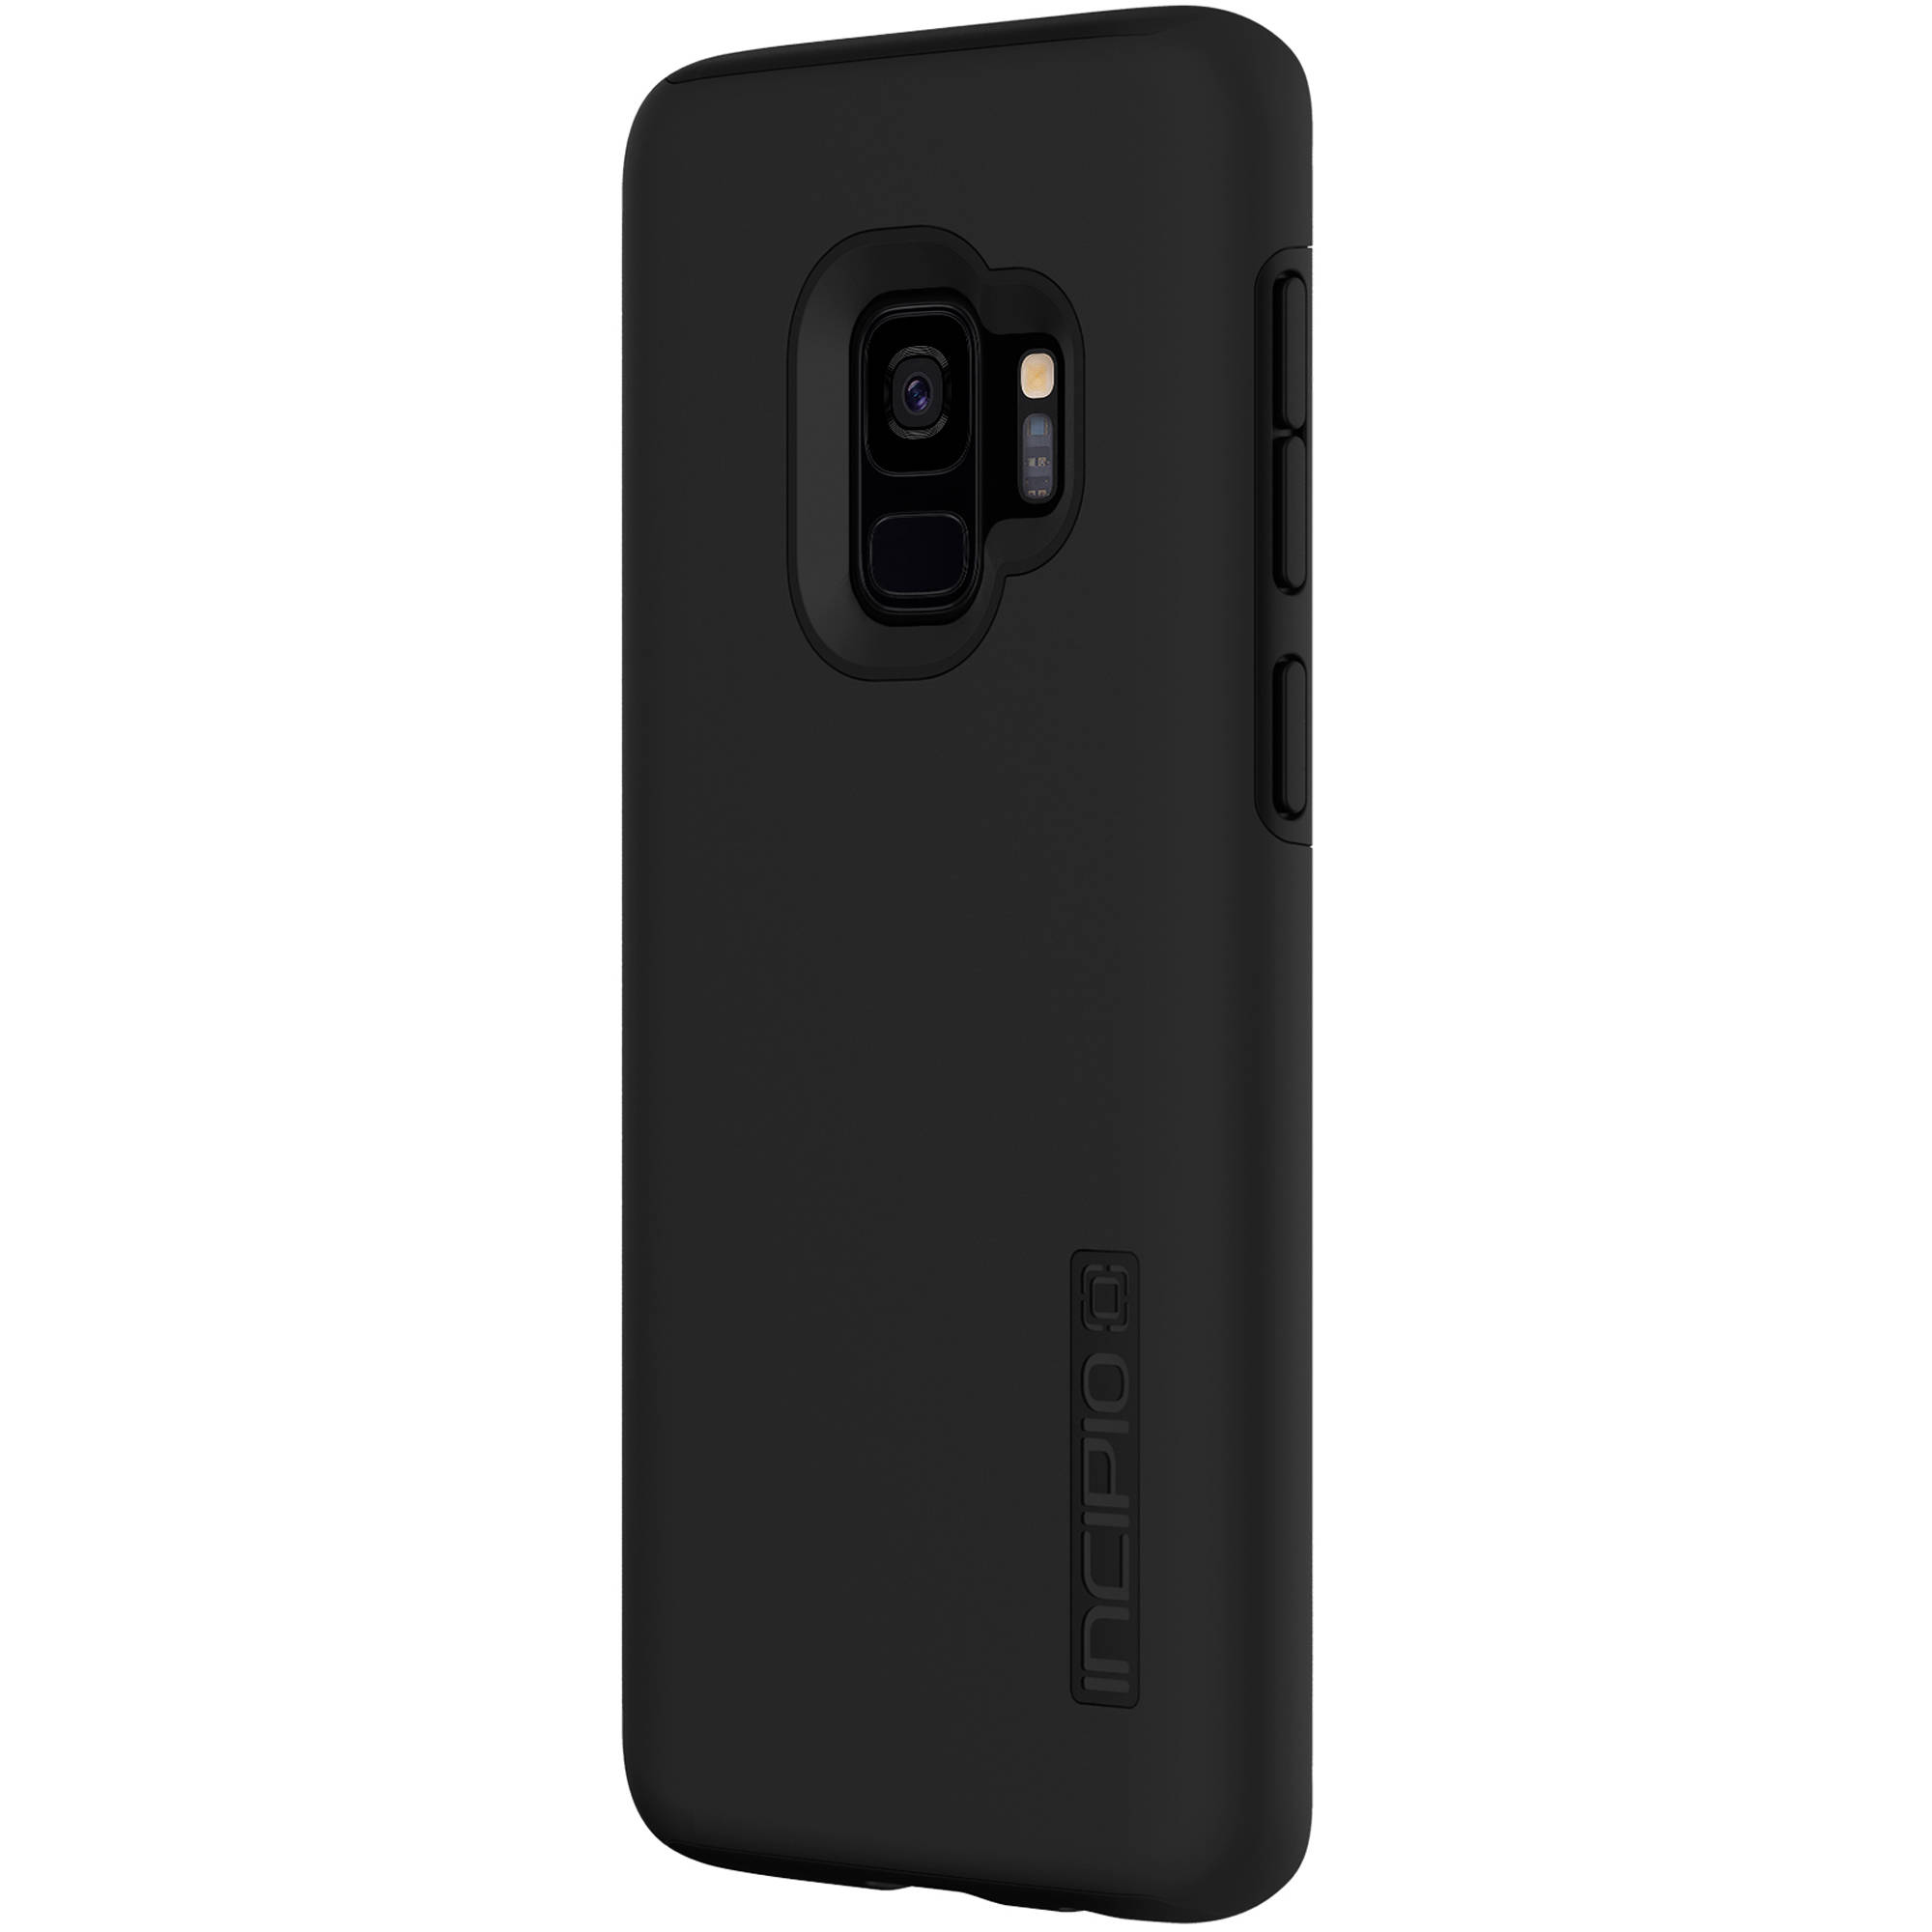 finest selection 4be52 57bc2 Incipio DualPro Case for Galaxy S9 (Black)